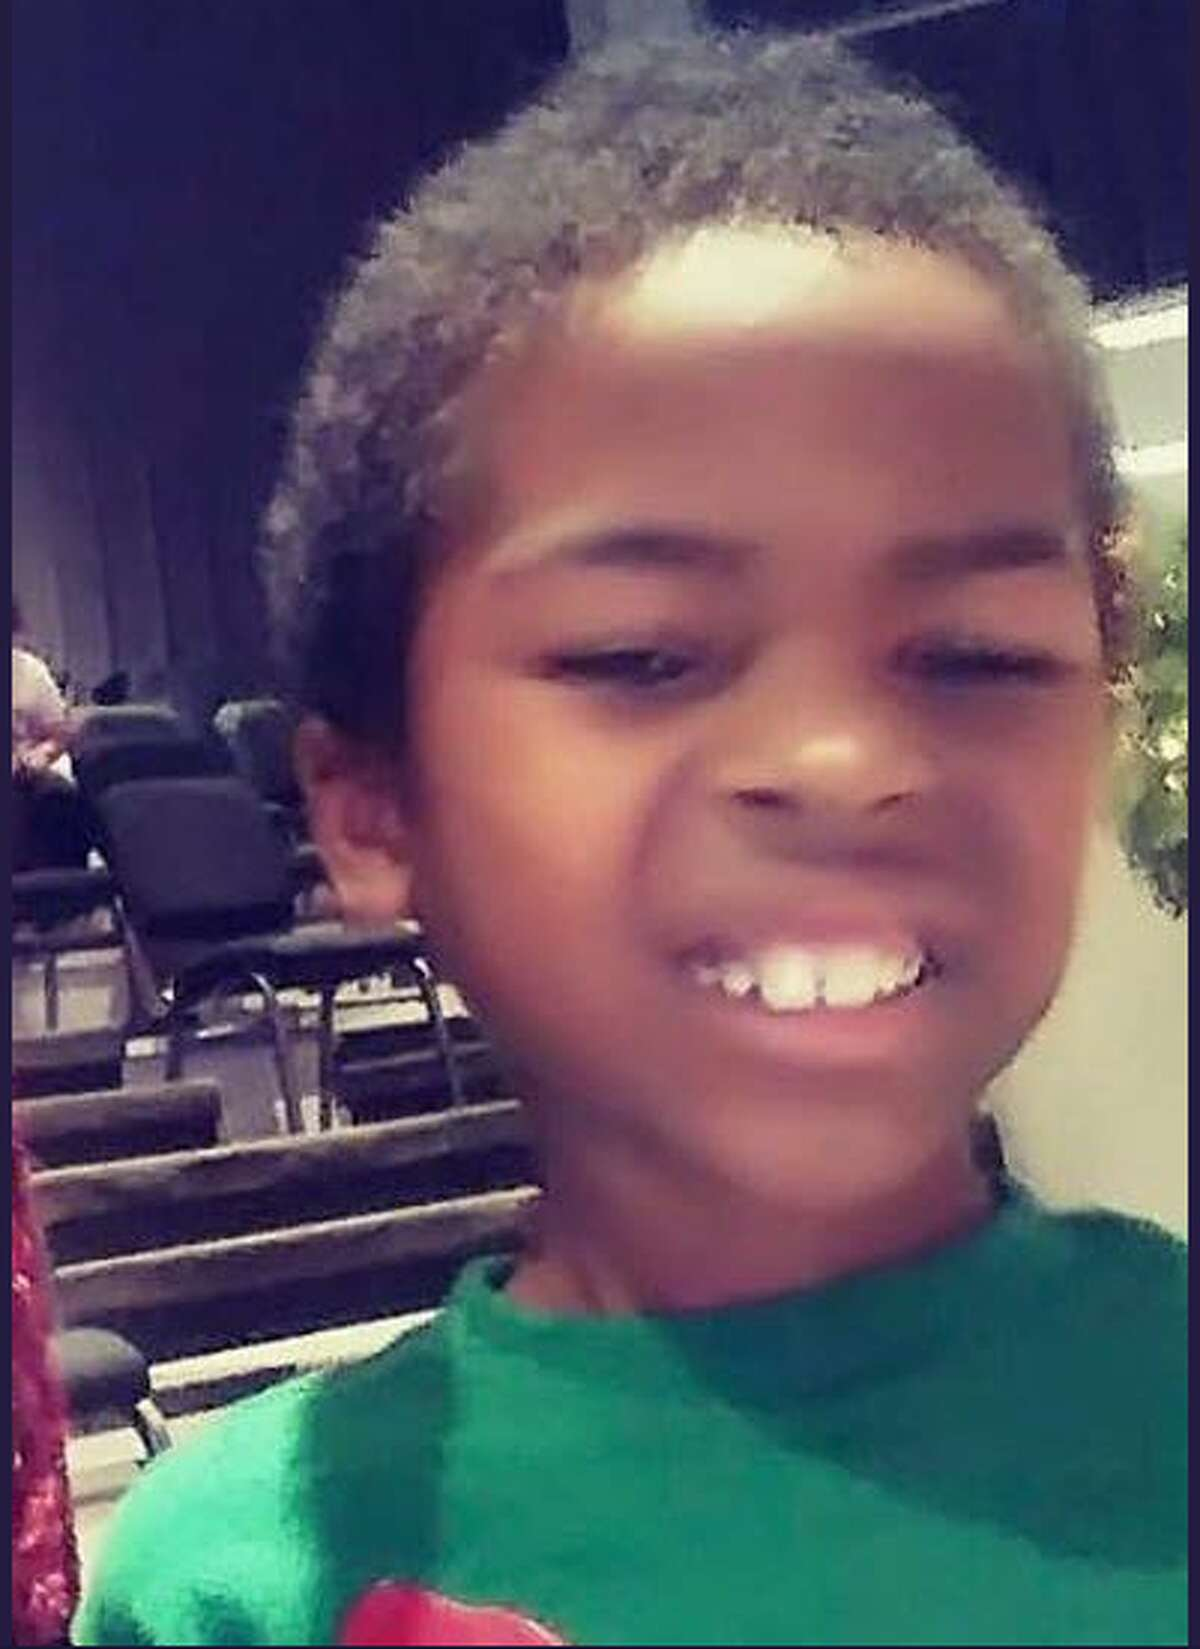 PHOTOS: These missing people were last seen in Houston Xavion Young, 7, went missing from his Texas City apartment on Sunday, and authorities haven't been able to locate him. Authorities say he has a non-verbal form of autism. >>> See more missing people last seen in Houston